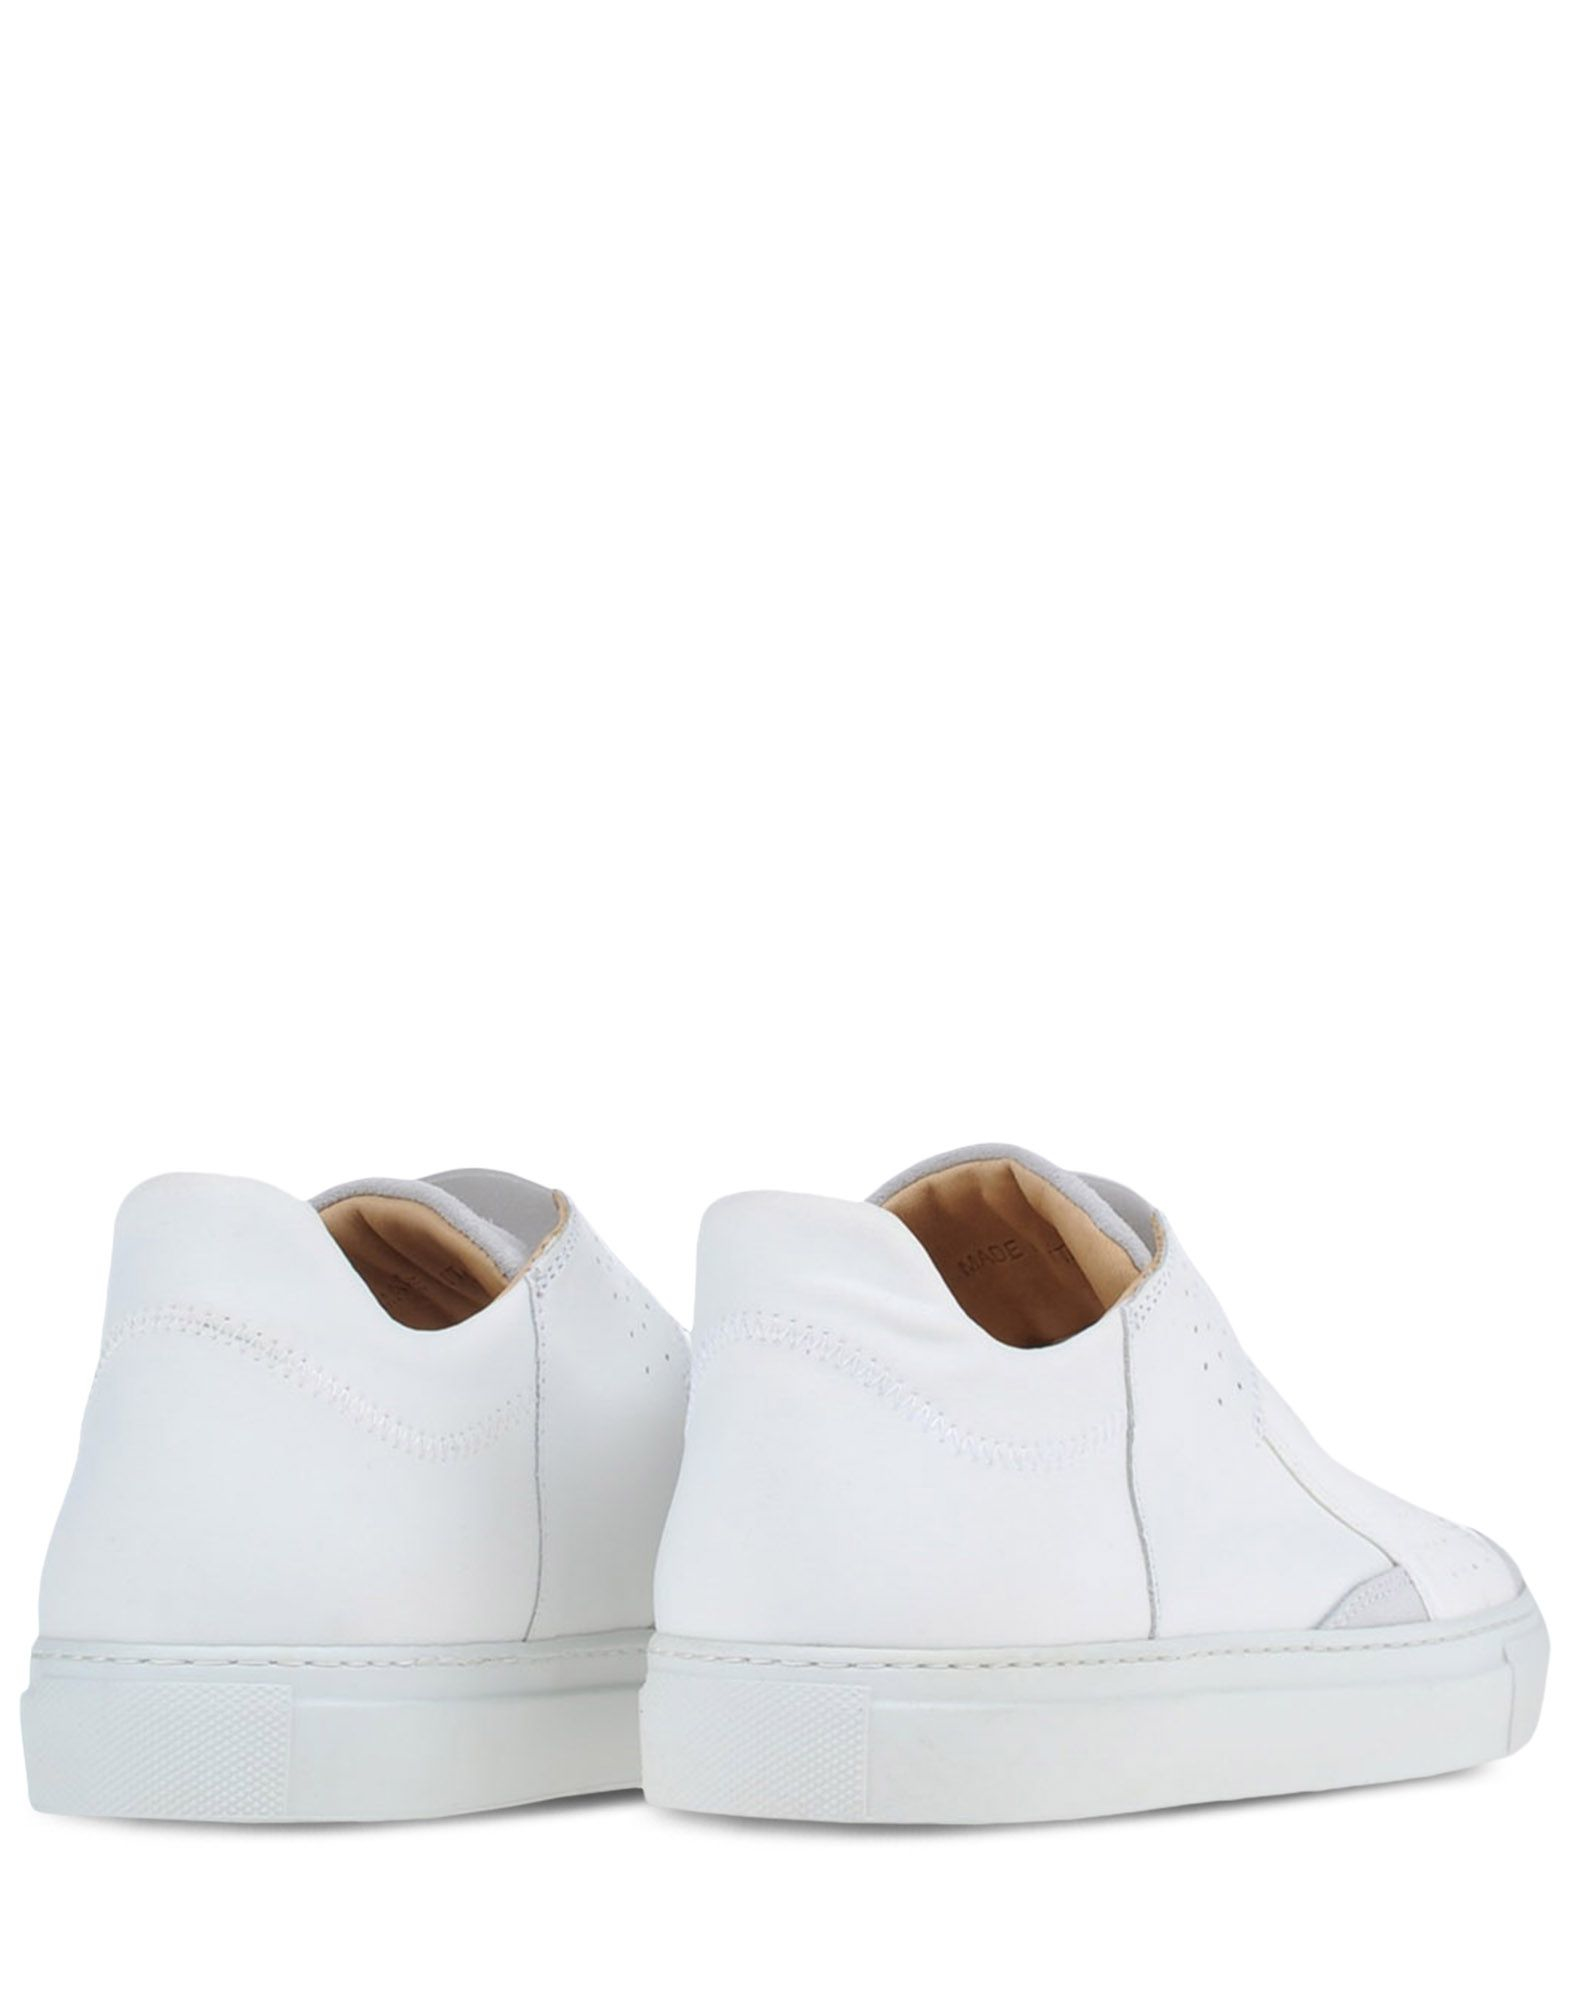 Mm6 by maison martin margiela low tops in white lyst for Mm6 maison margiela